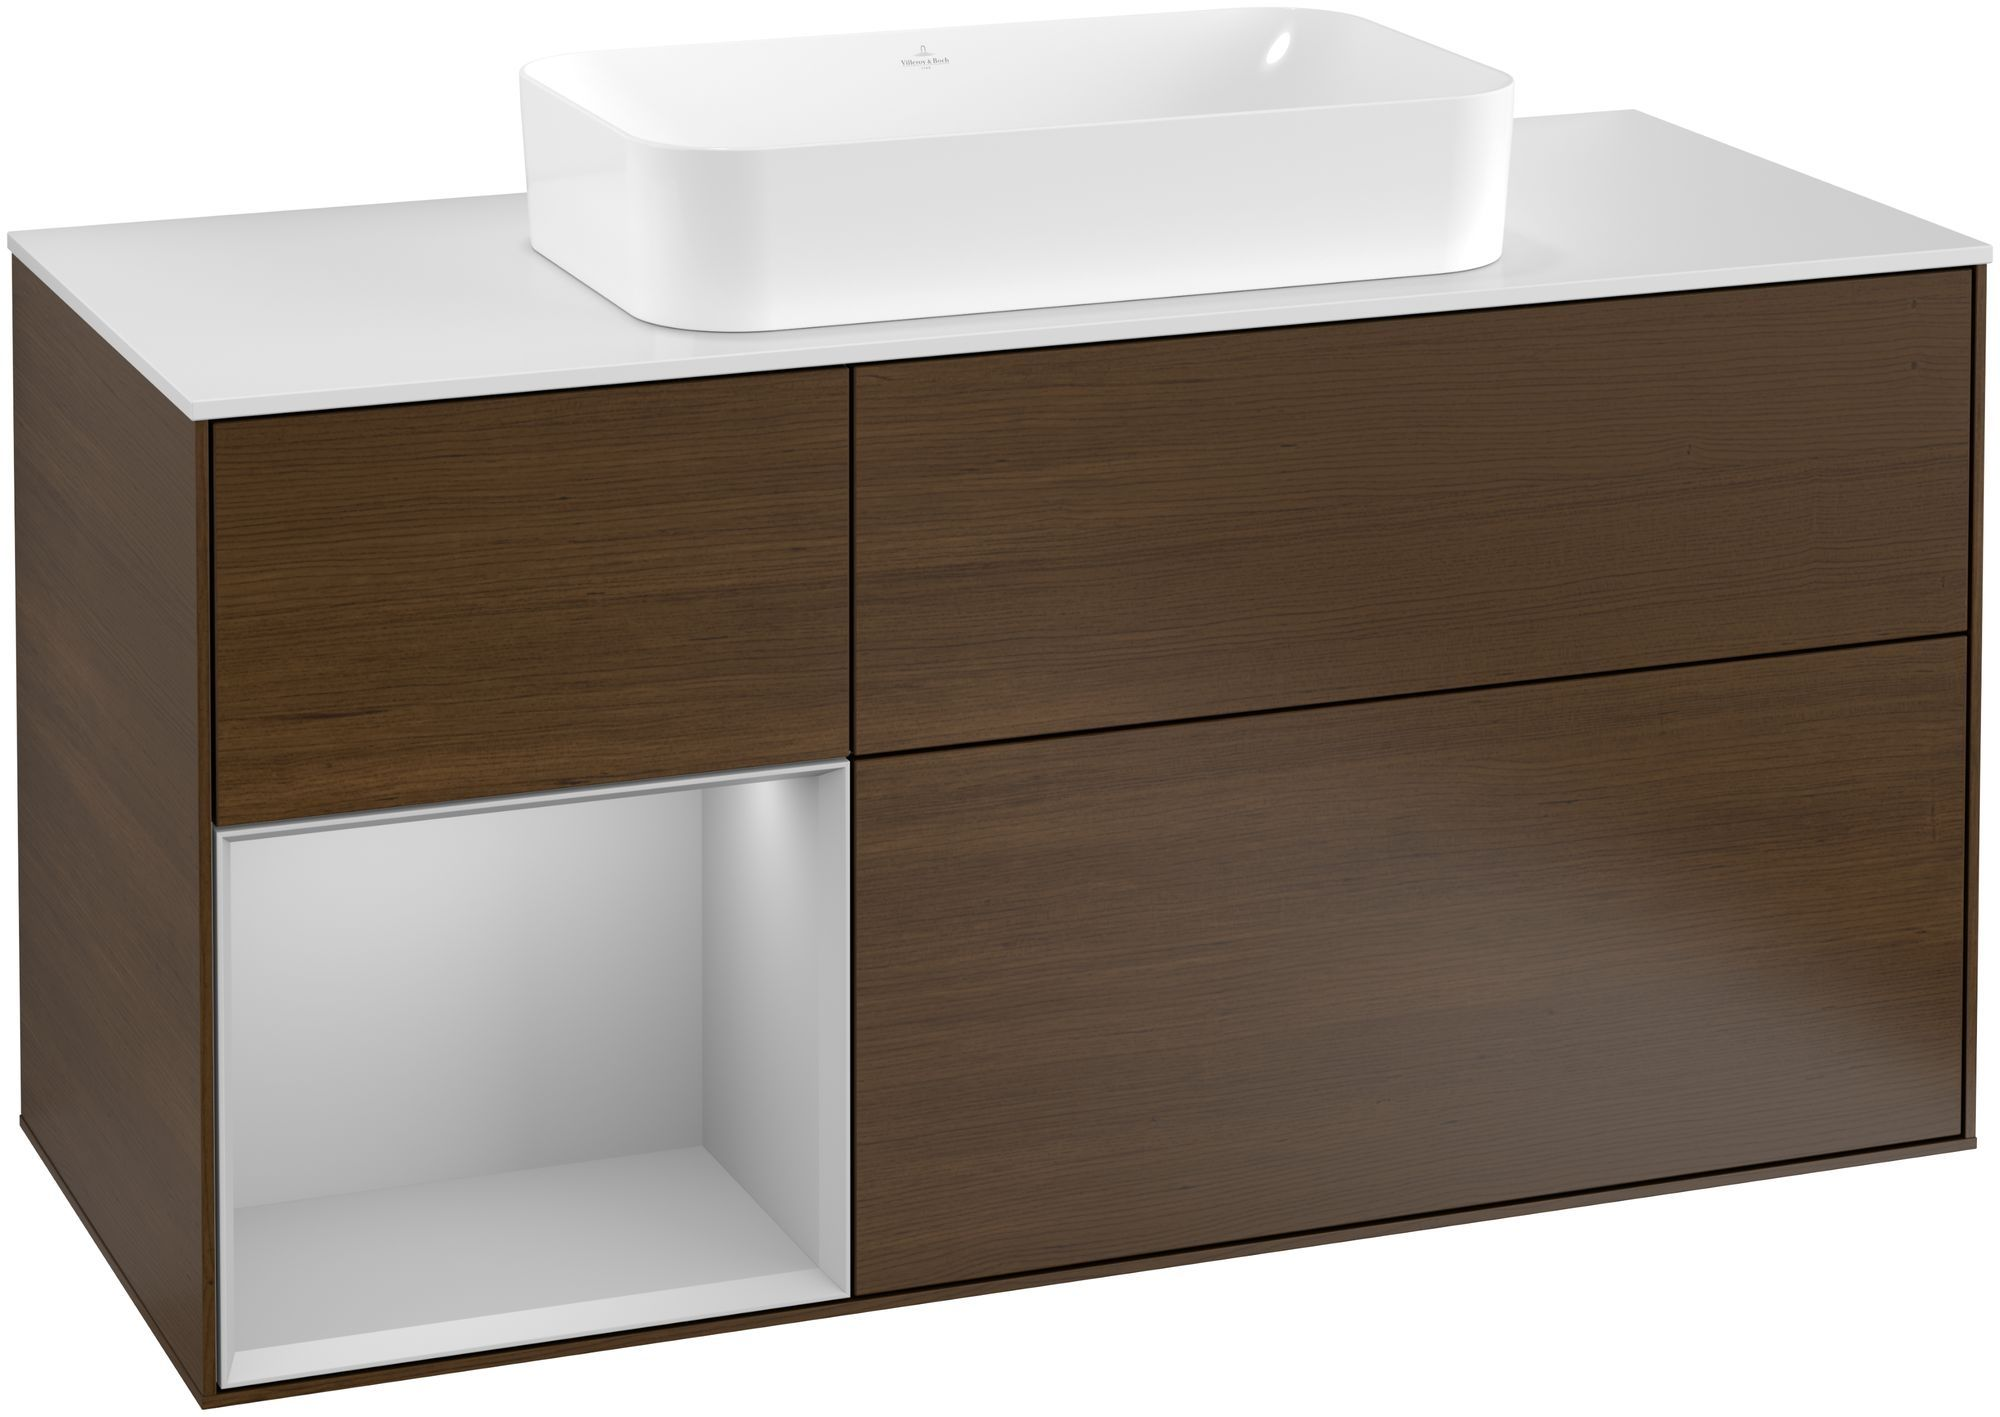 Villeroy & Boch Finion F29 Waschtischunterschrank mit Regalelement 3 Auszüge Waschtisch mittig LED-Beleuchtung B:120xH:60,3xT:50,1cm Front, Korpus: Walnut Veneer, Regal: Light Grey Matt, Glasplatte: White Matt F291GJGN